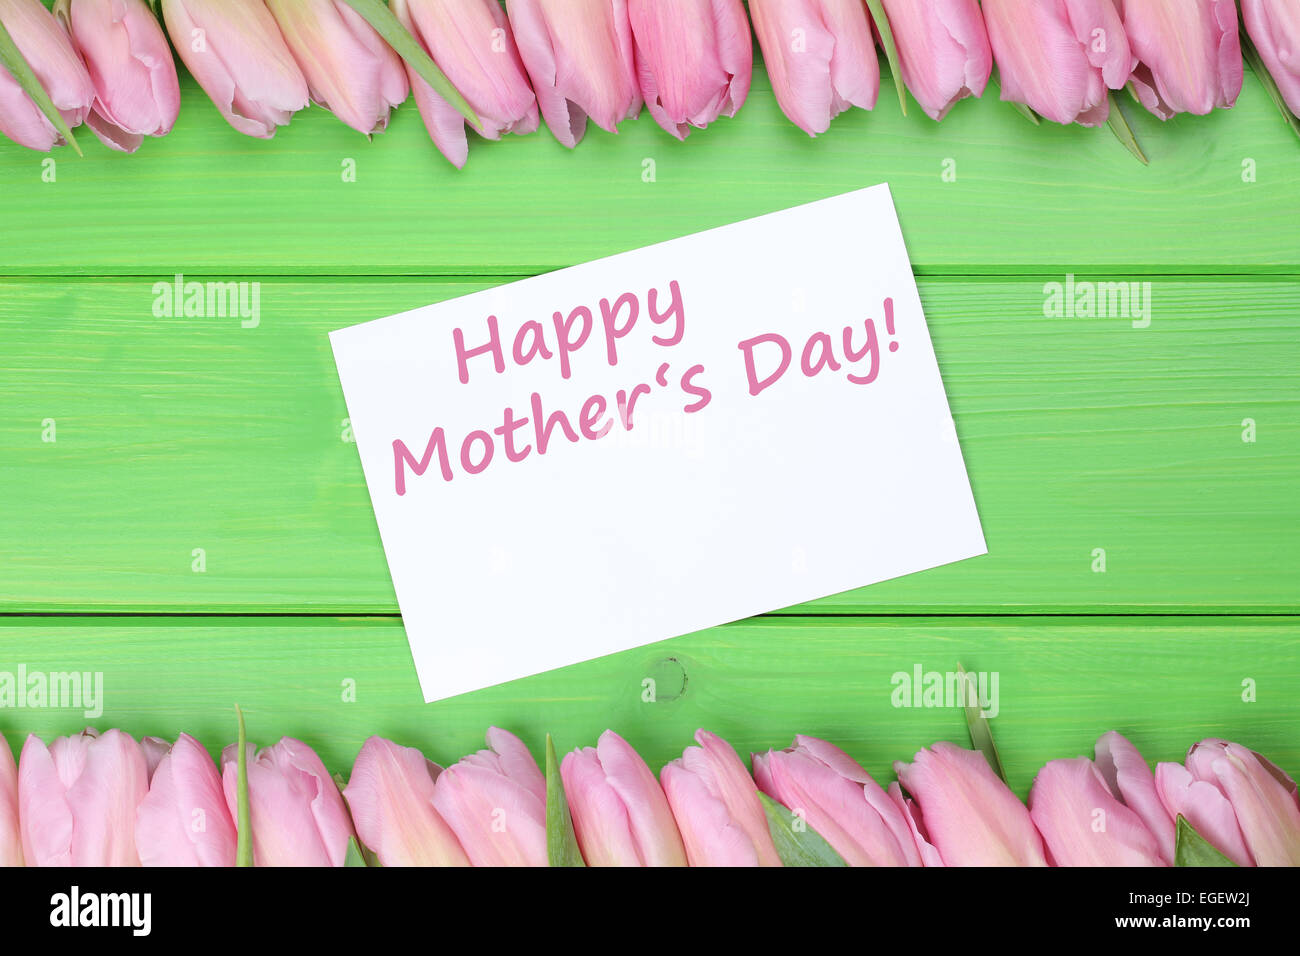 Tulips flowers with greeting card and the text Happy mothers day with copyspace - Stock Image